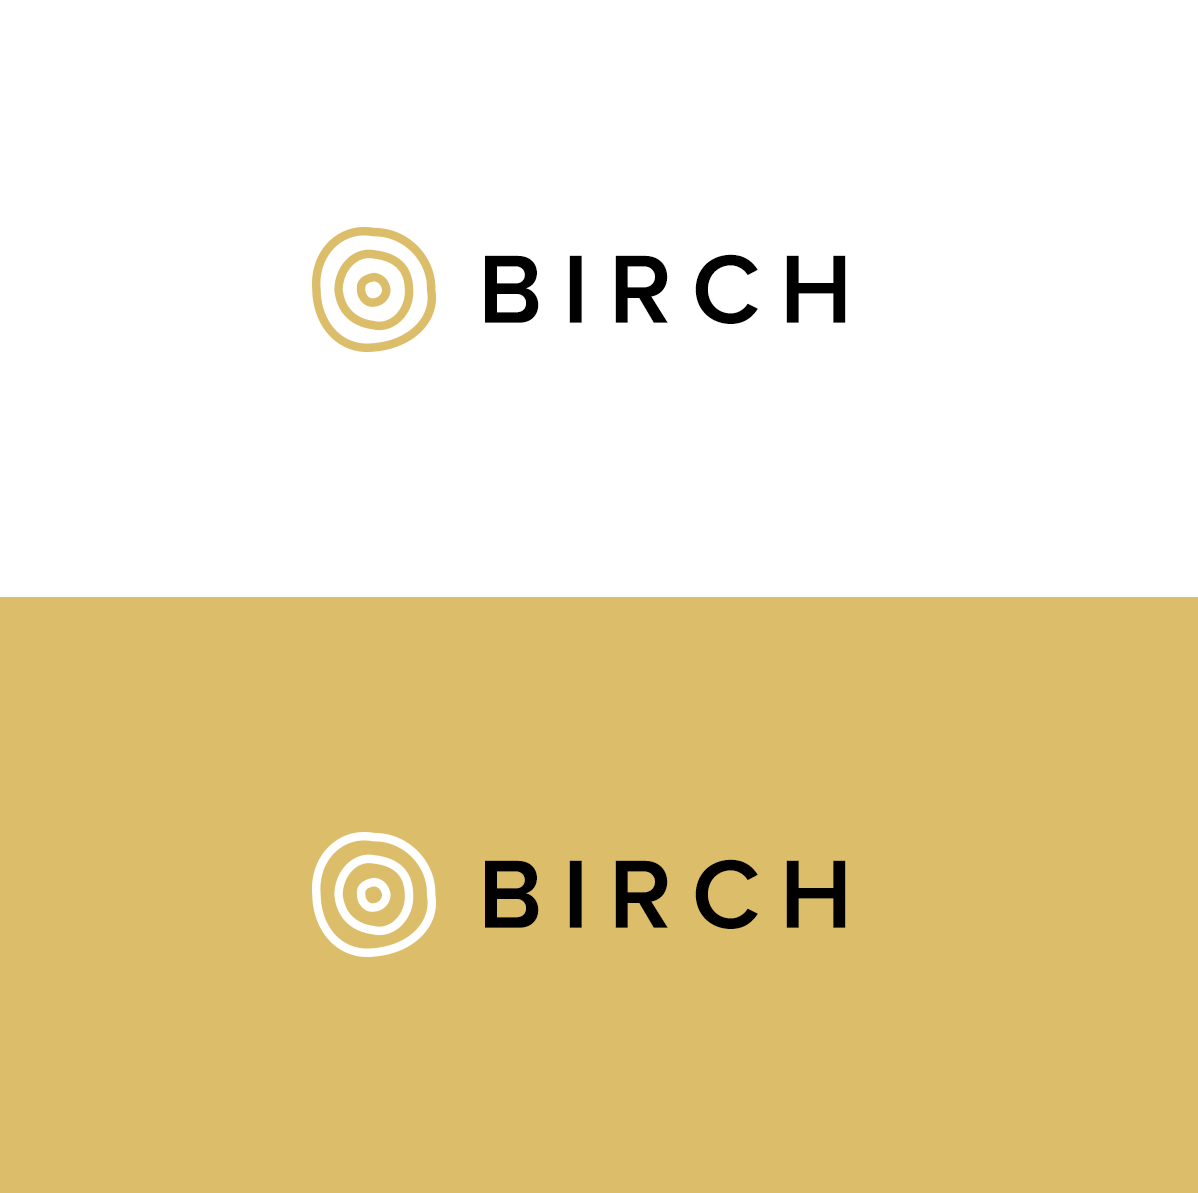 Birch WordPress Theme Logo